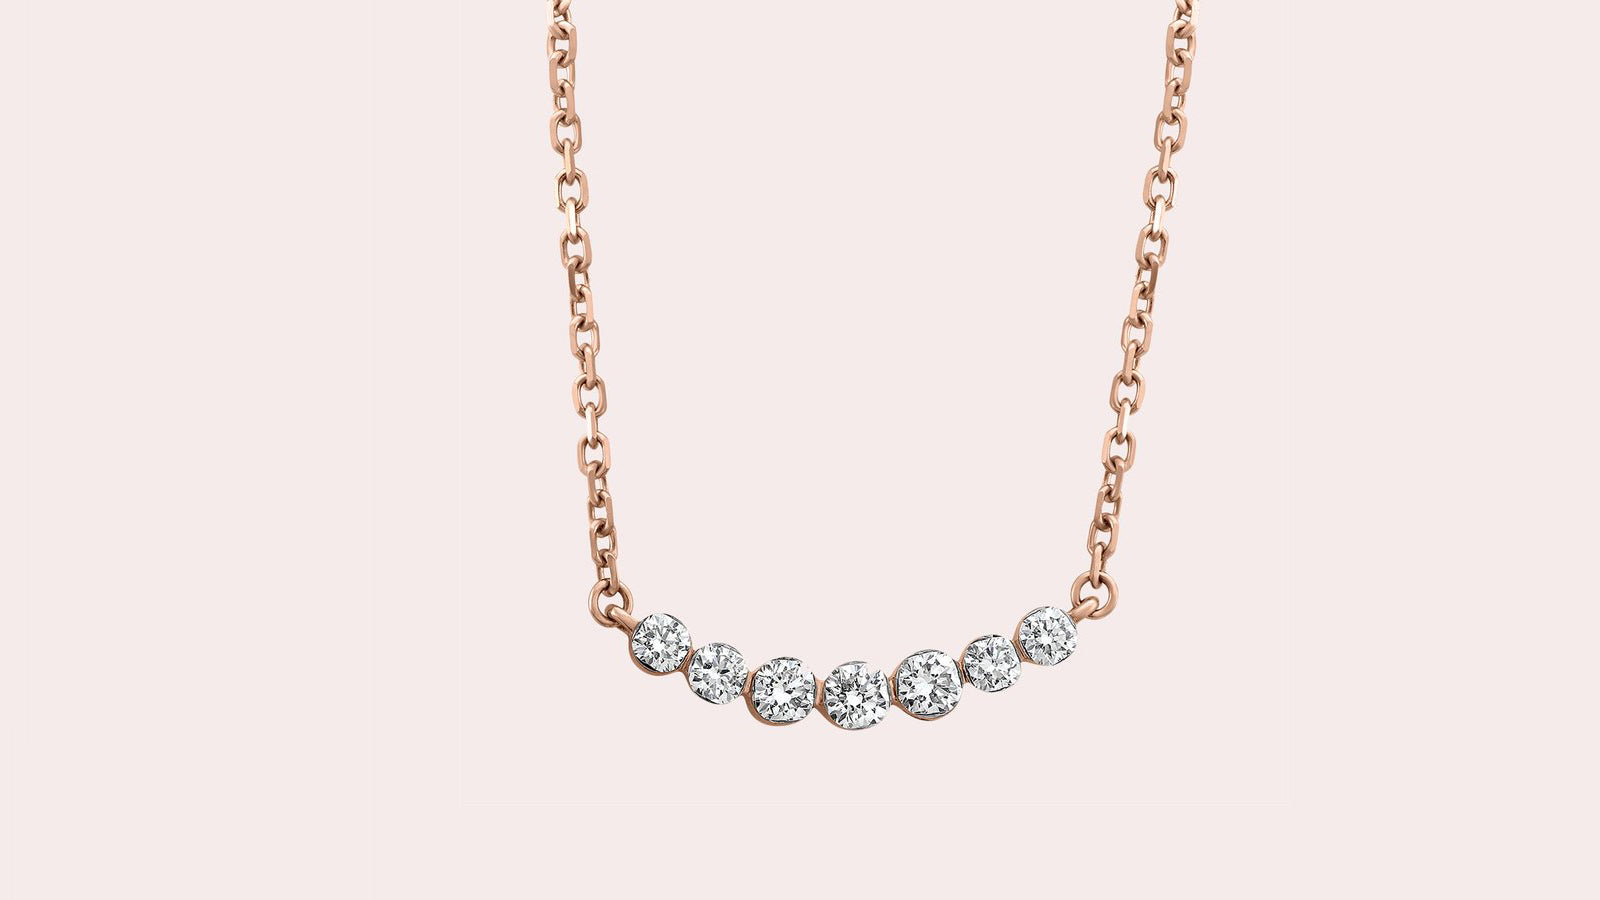 The Diamond Crescent Necklace